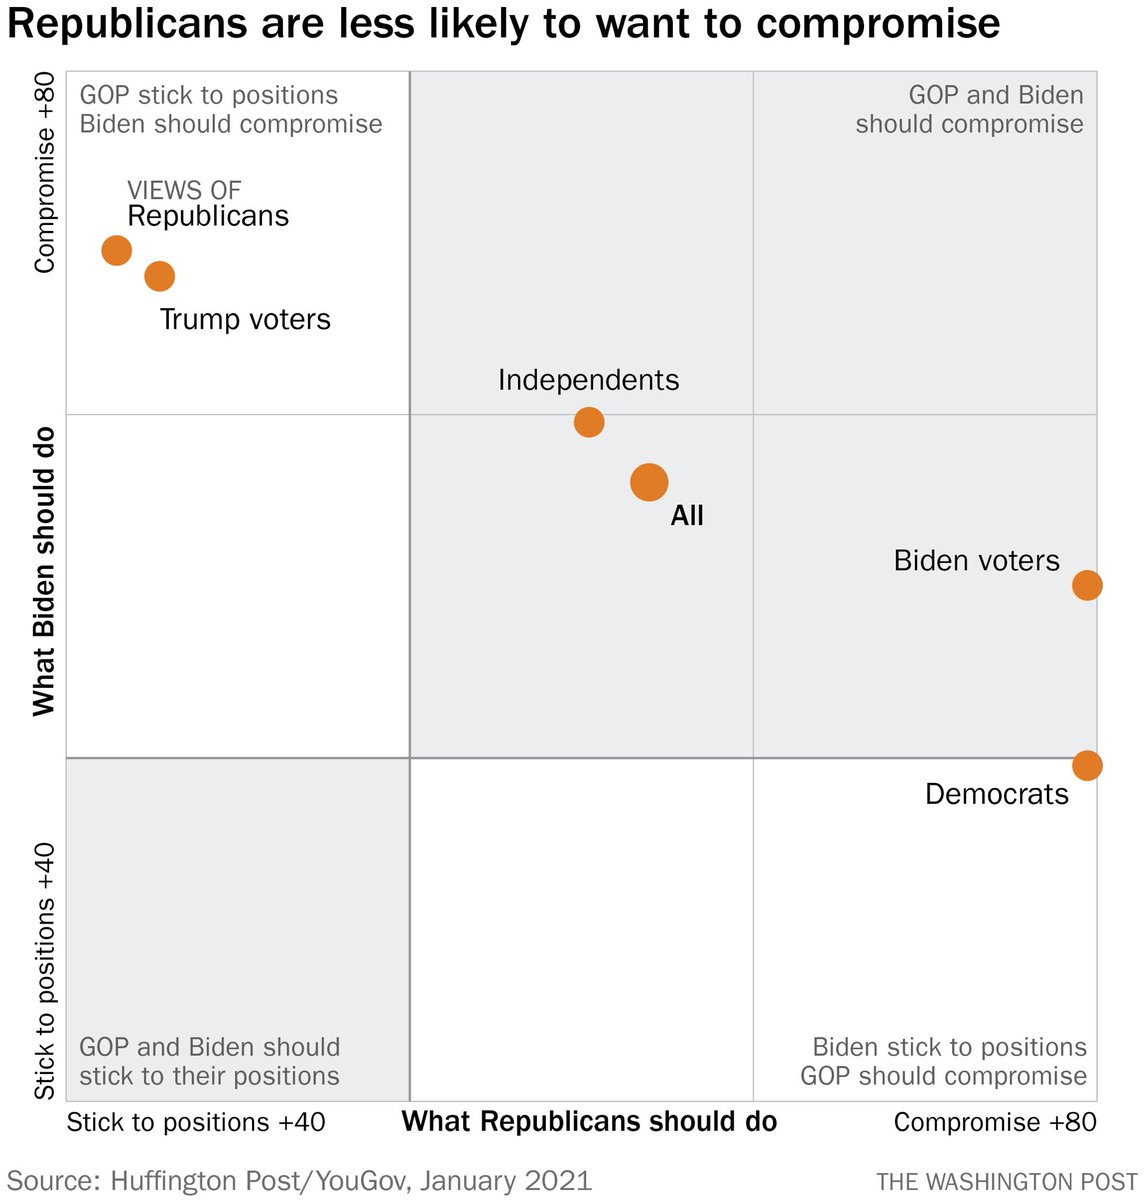 One challenge with calls for bipartisanship is that Republicans are a lot less likely to say they think their party should compromise.